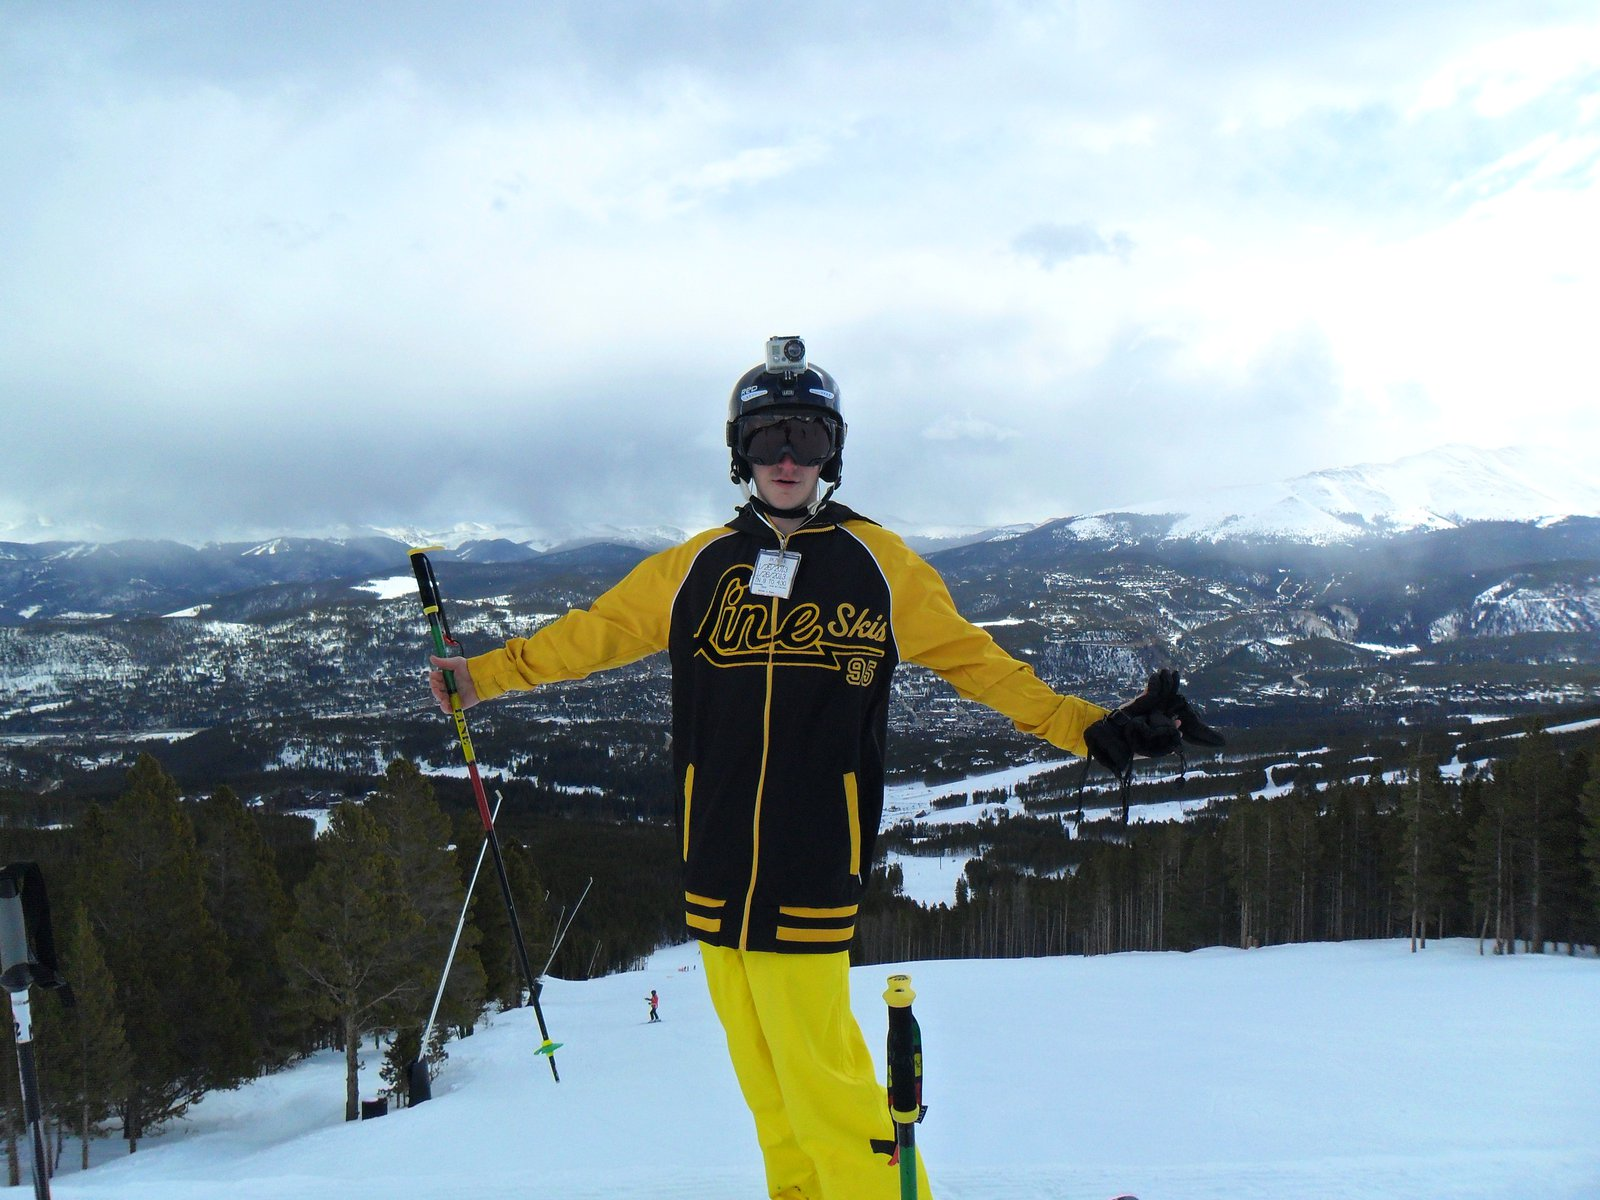 A day at Breck